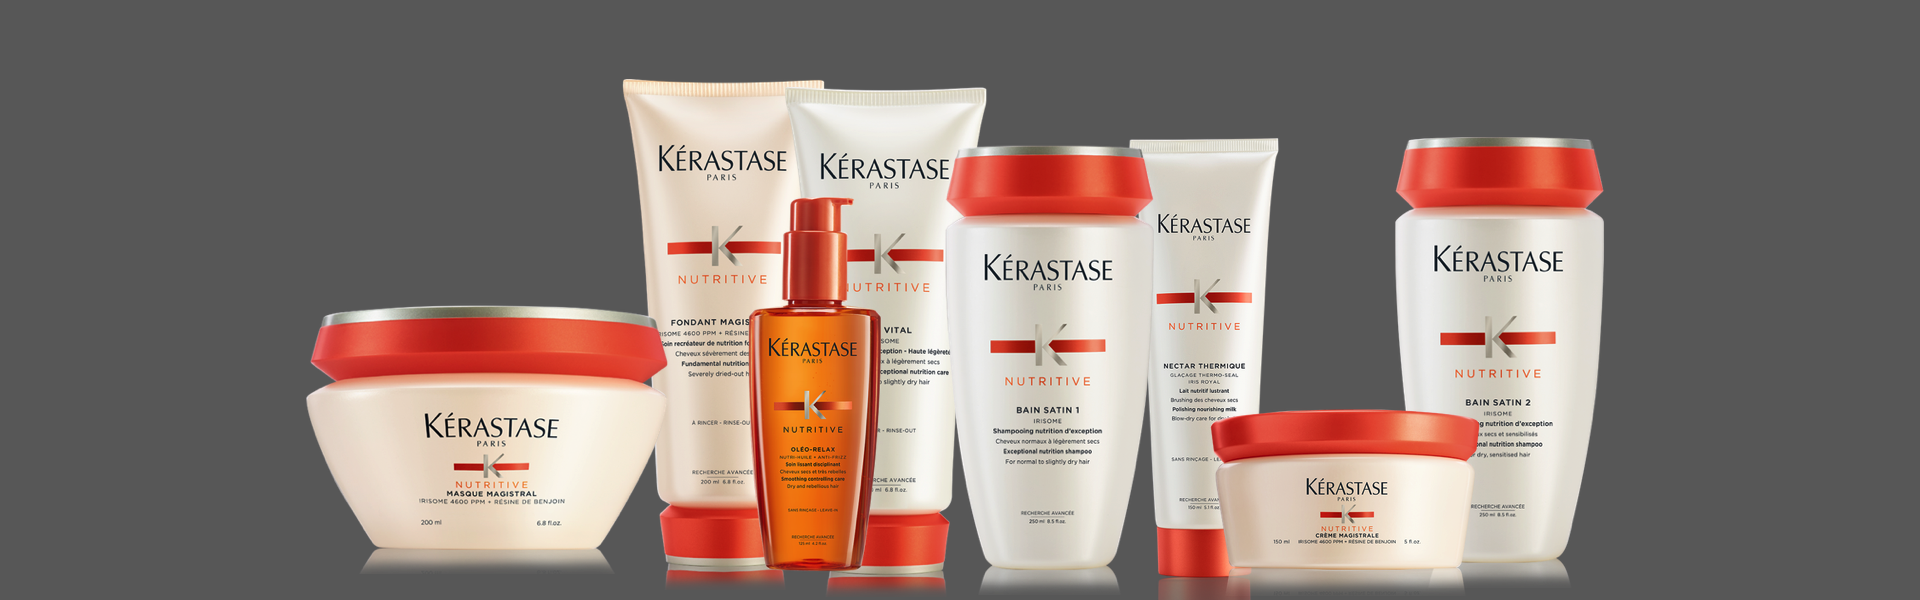 KÉRASTASE NUTRITIVE USA TEXAS AALAM SALON SHOP Plano Frisco Dallas Allen McKinney Addison TX DFW